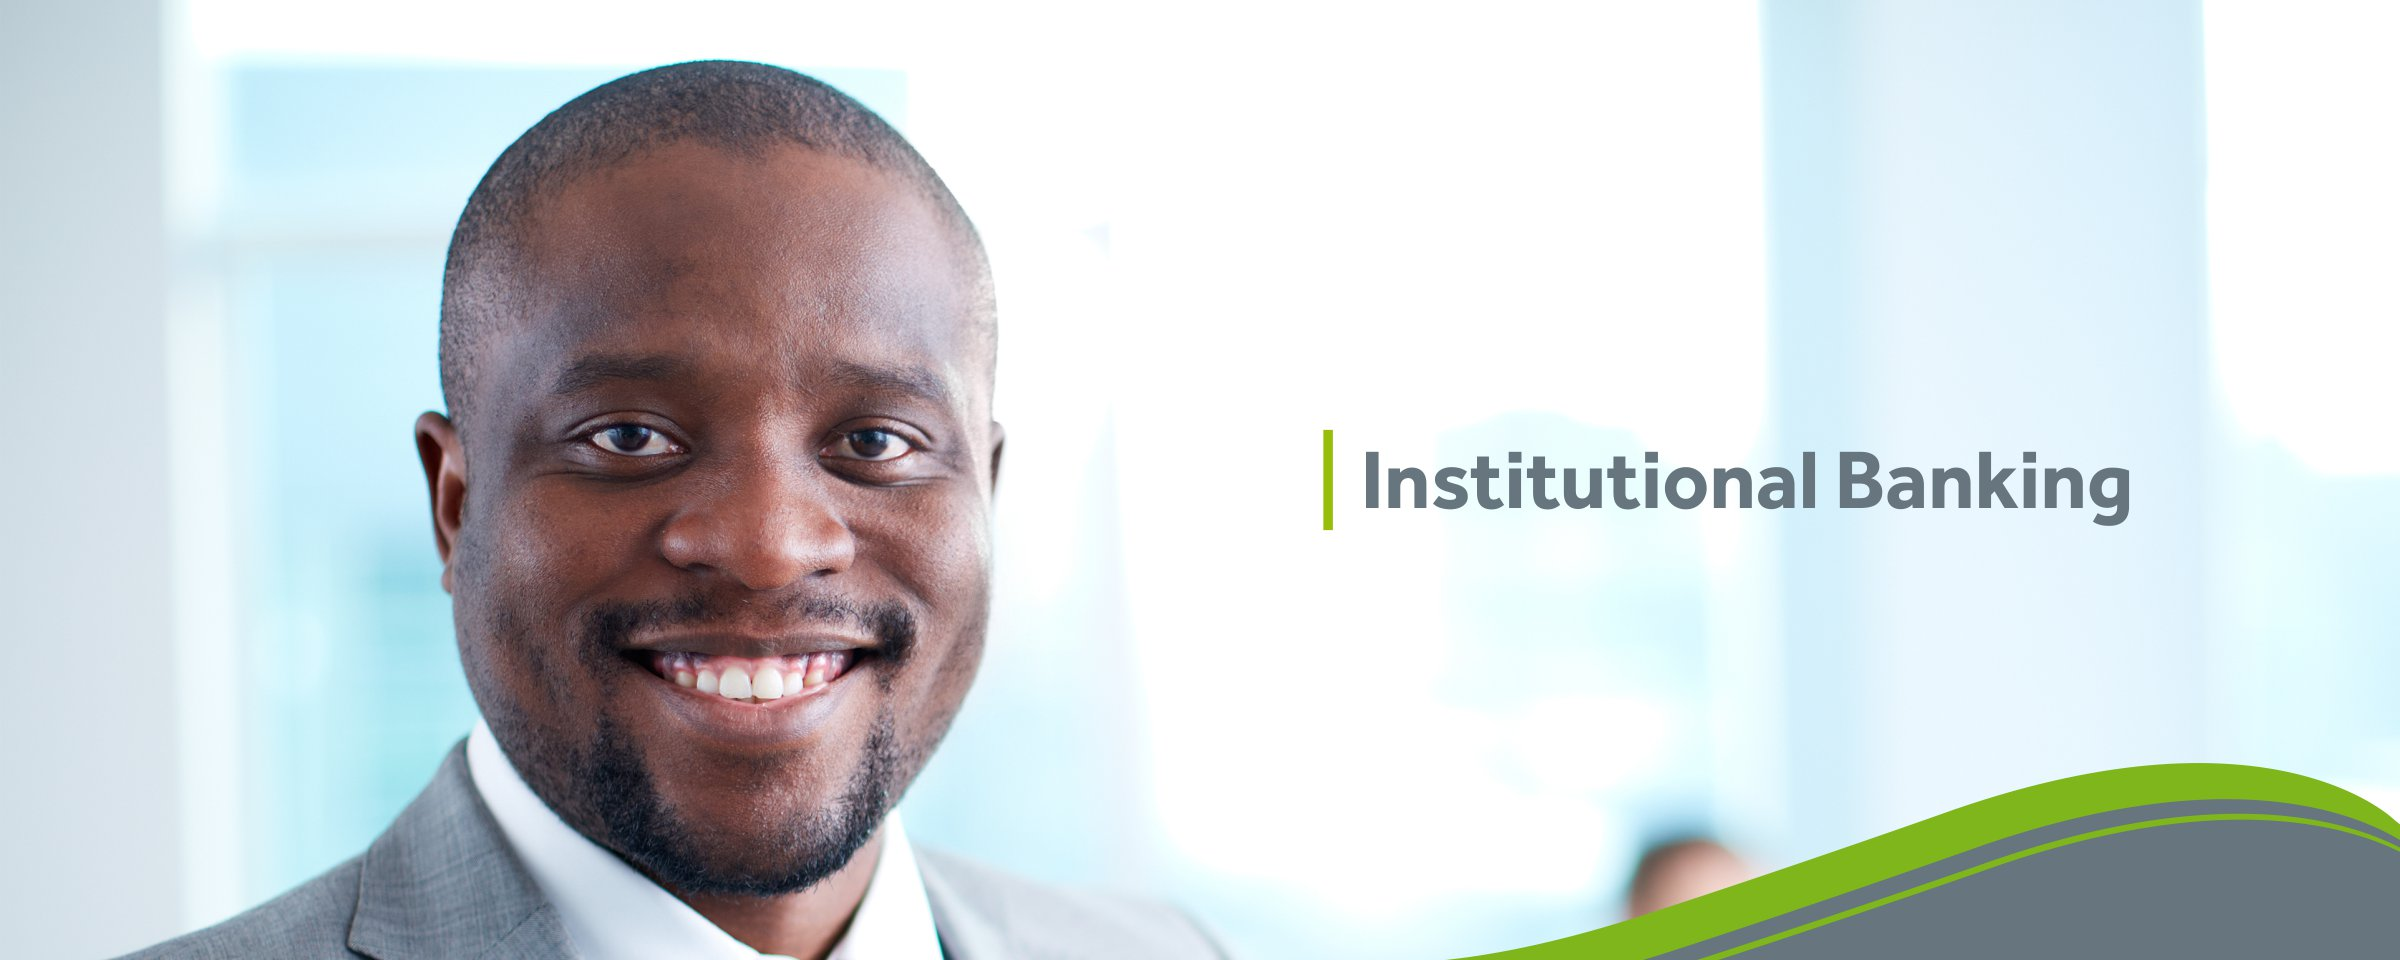 institutional-banking